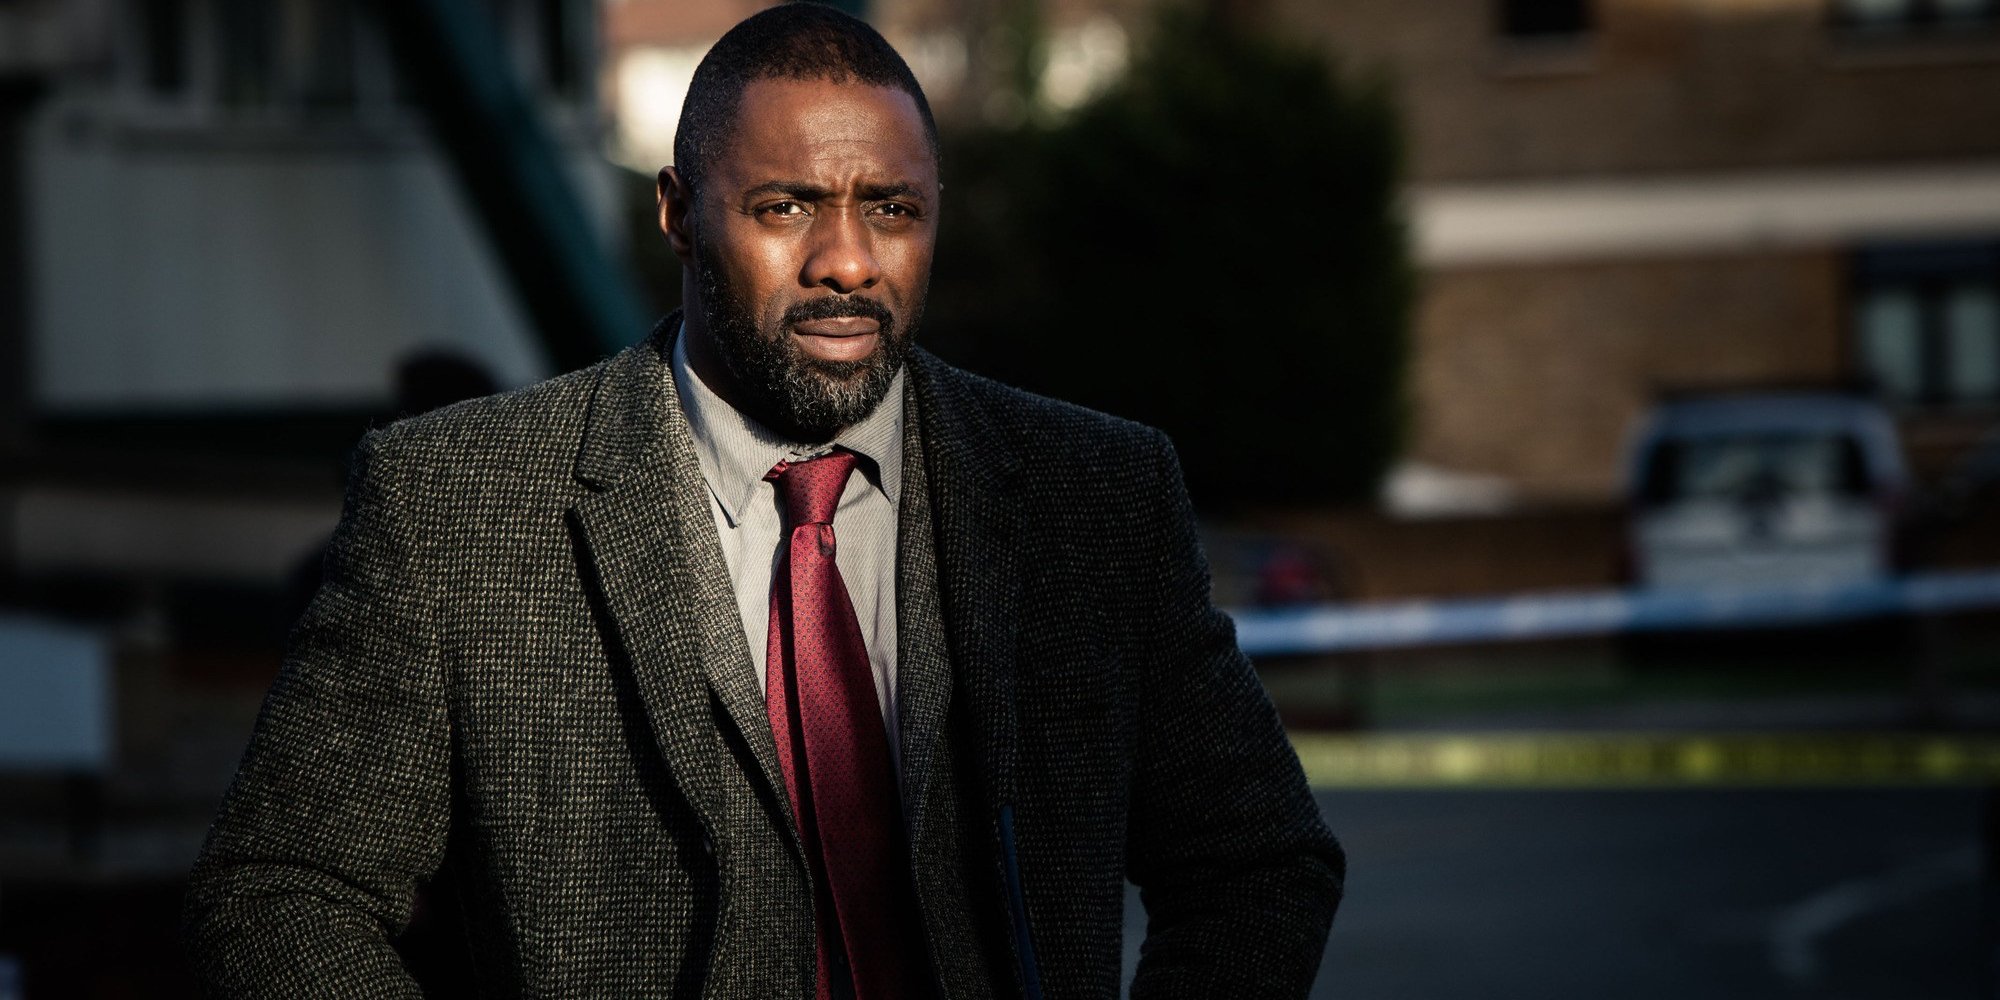 Idris Elba as DCI John Luther in Luther